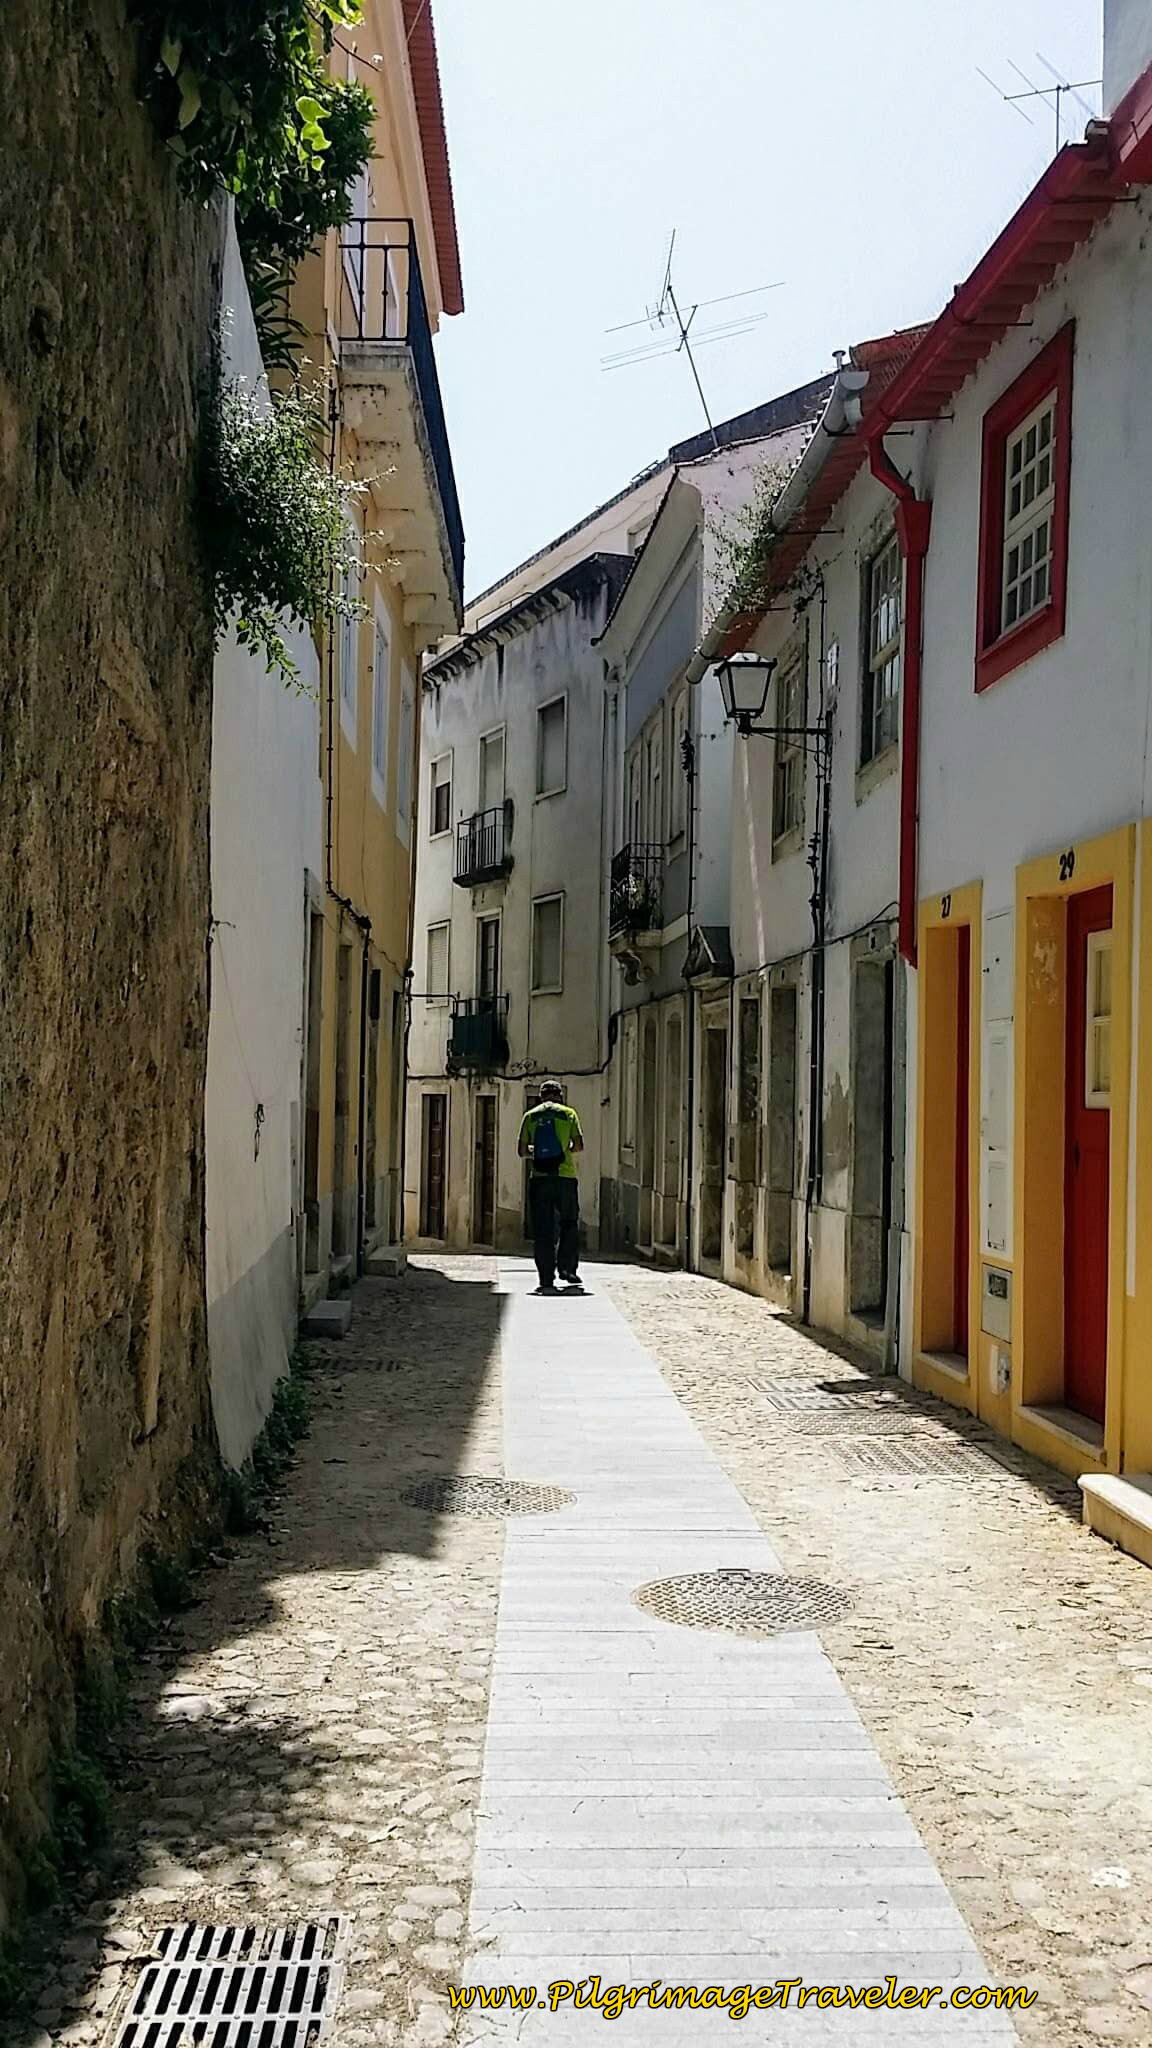 Narrow Streets of the Rua Sobre Ribas, Coimbra, Portugal